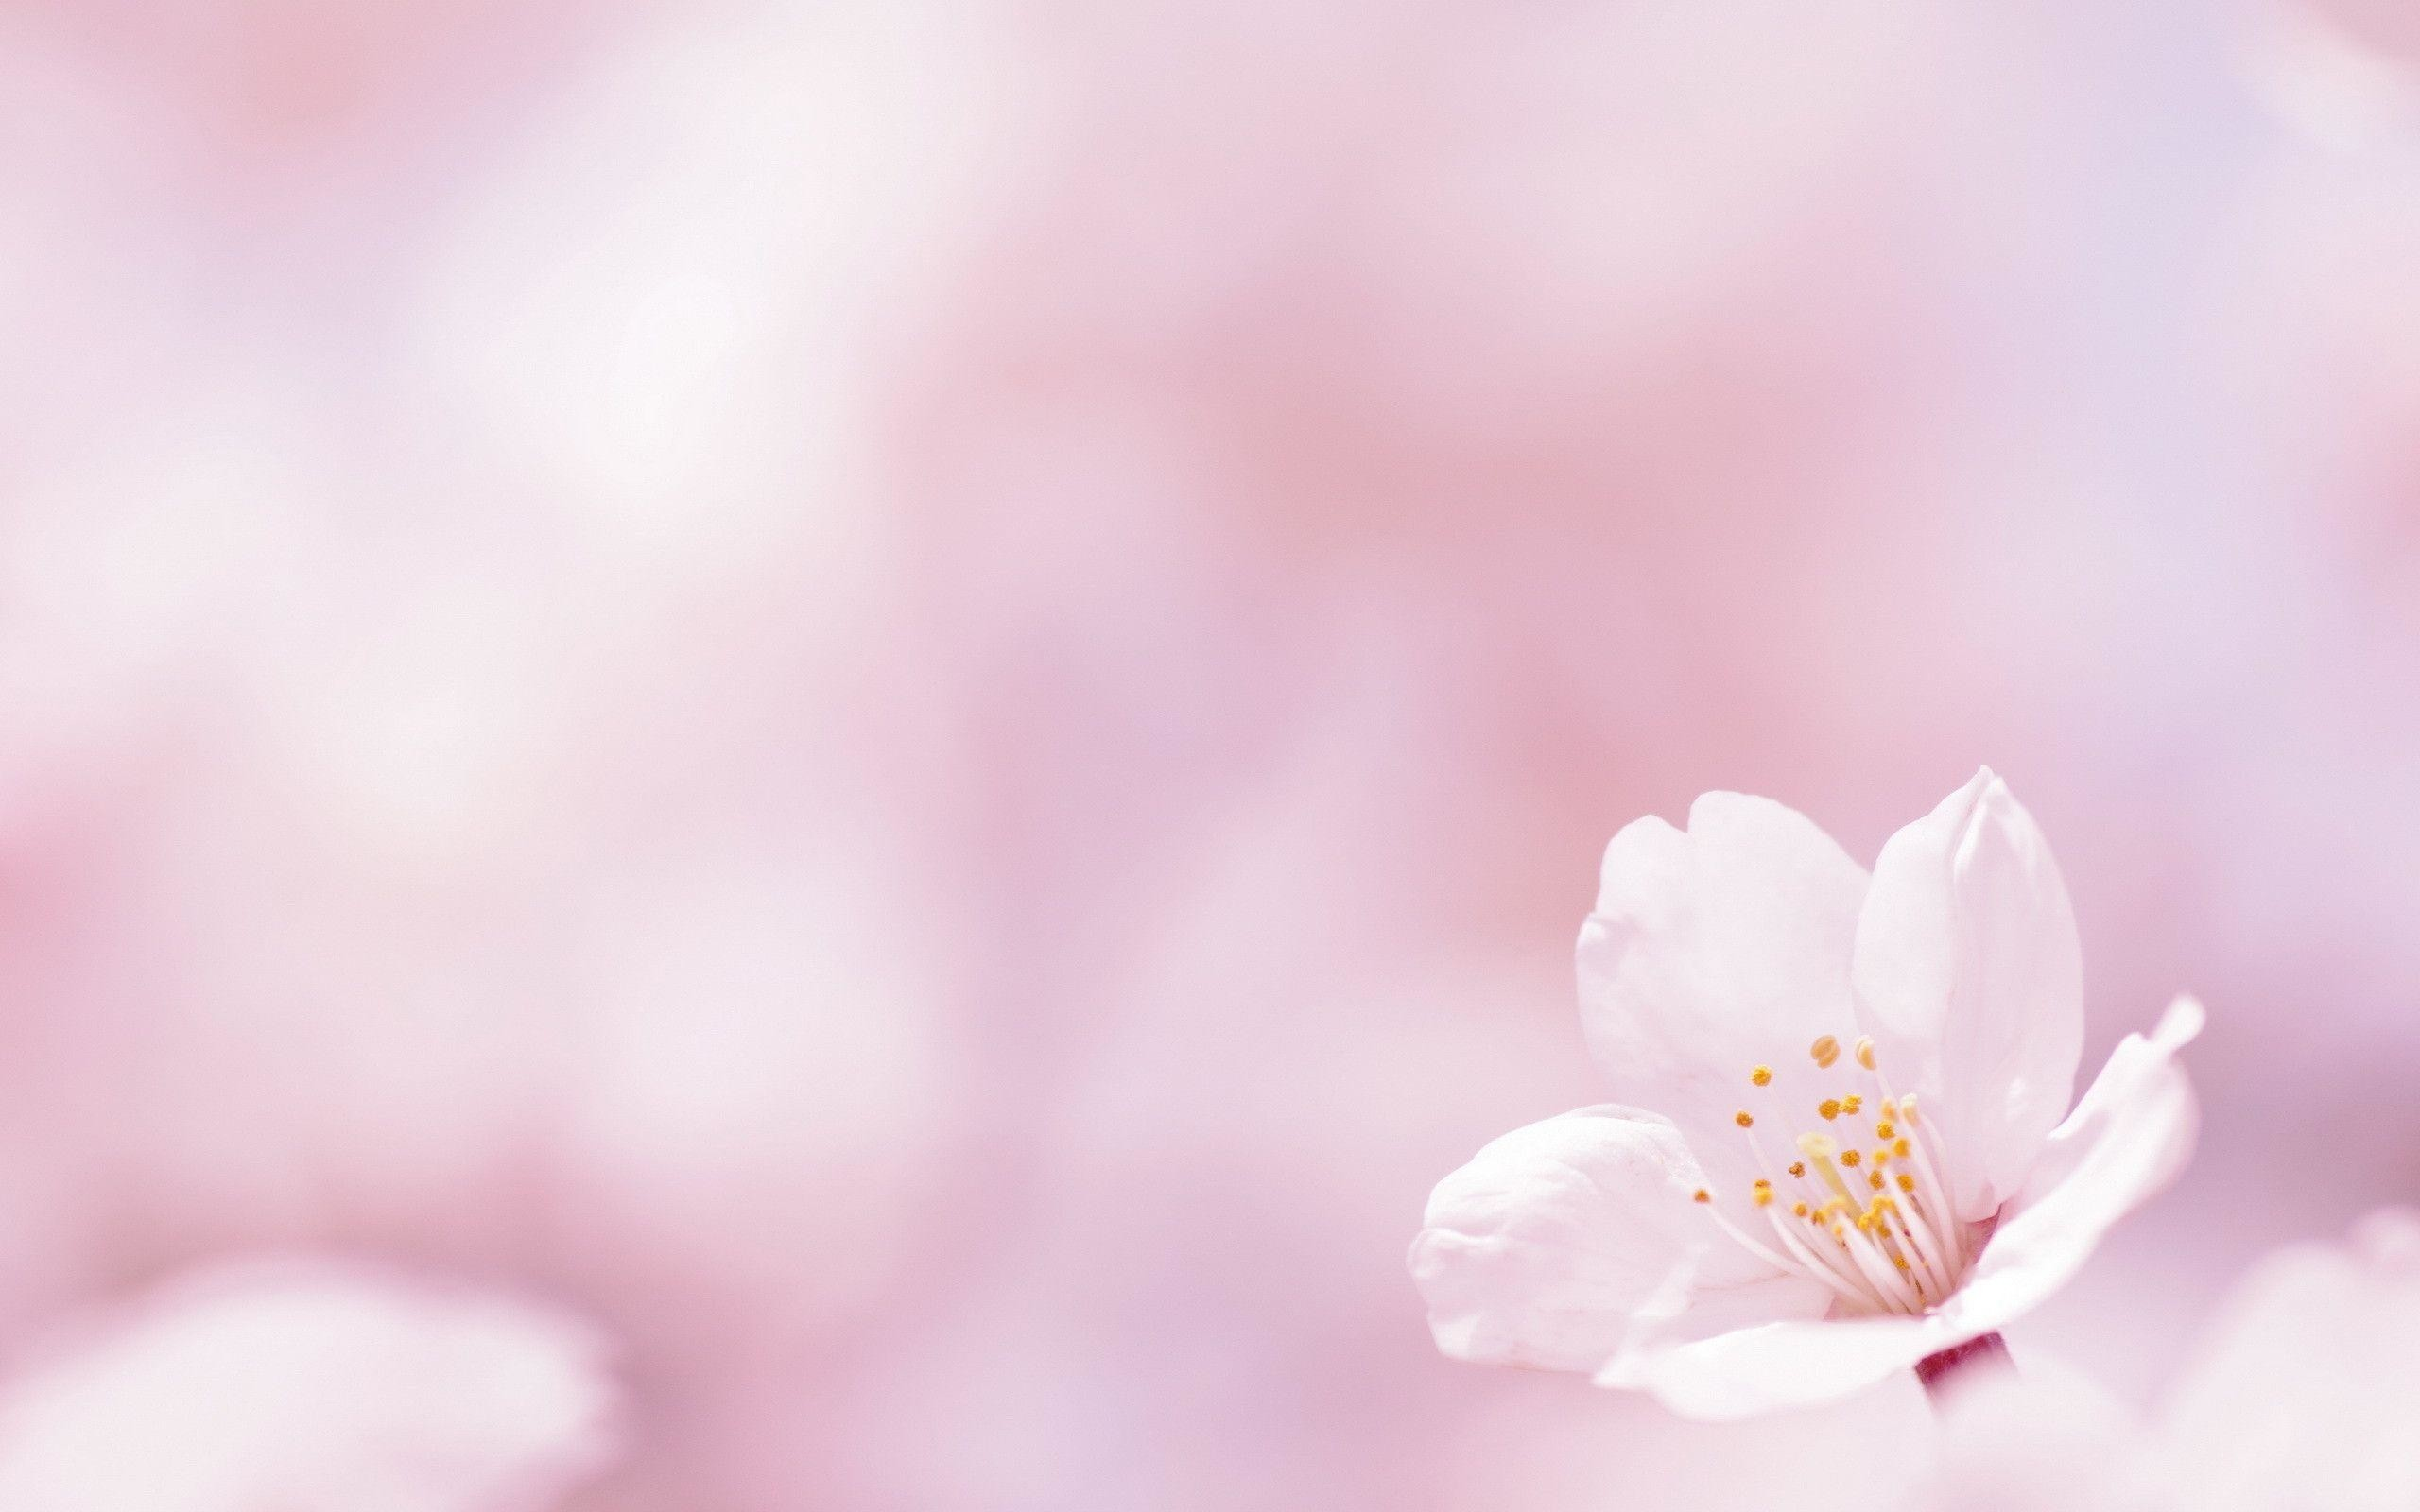 Spring Flower Wallpaper Backgrounds